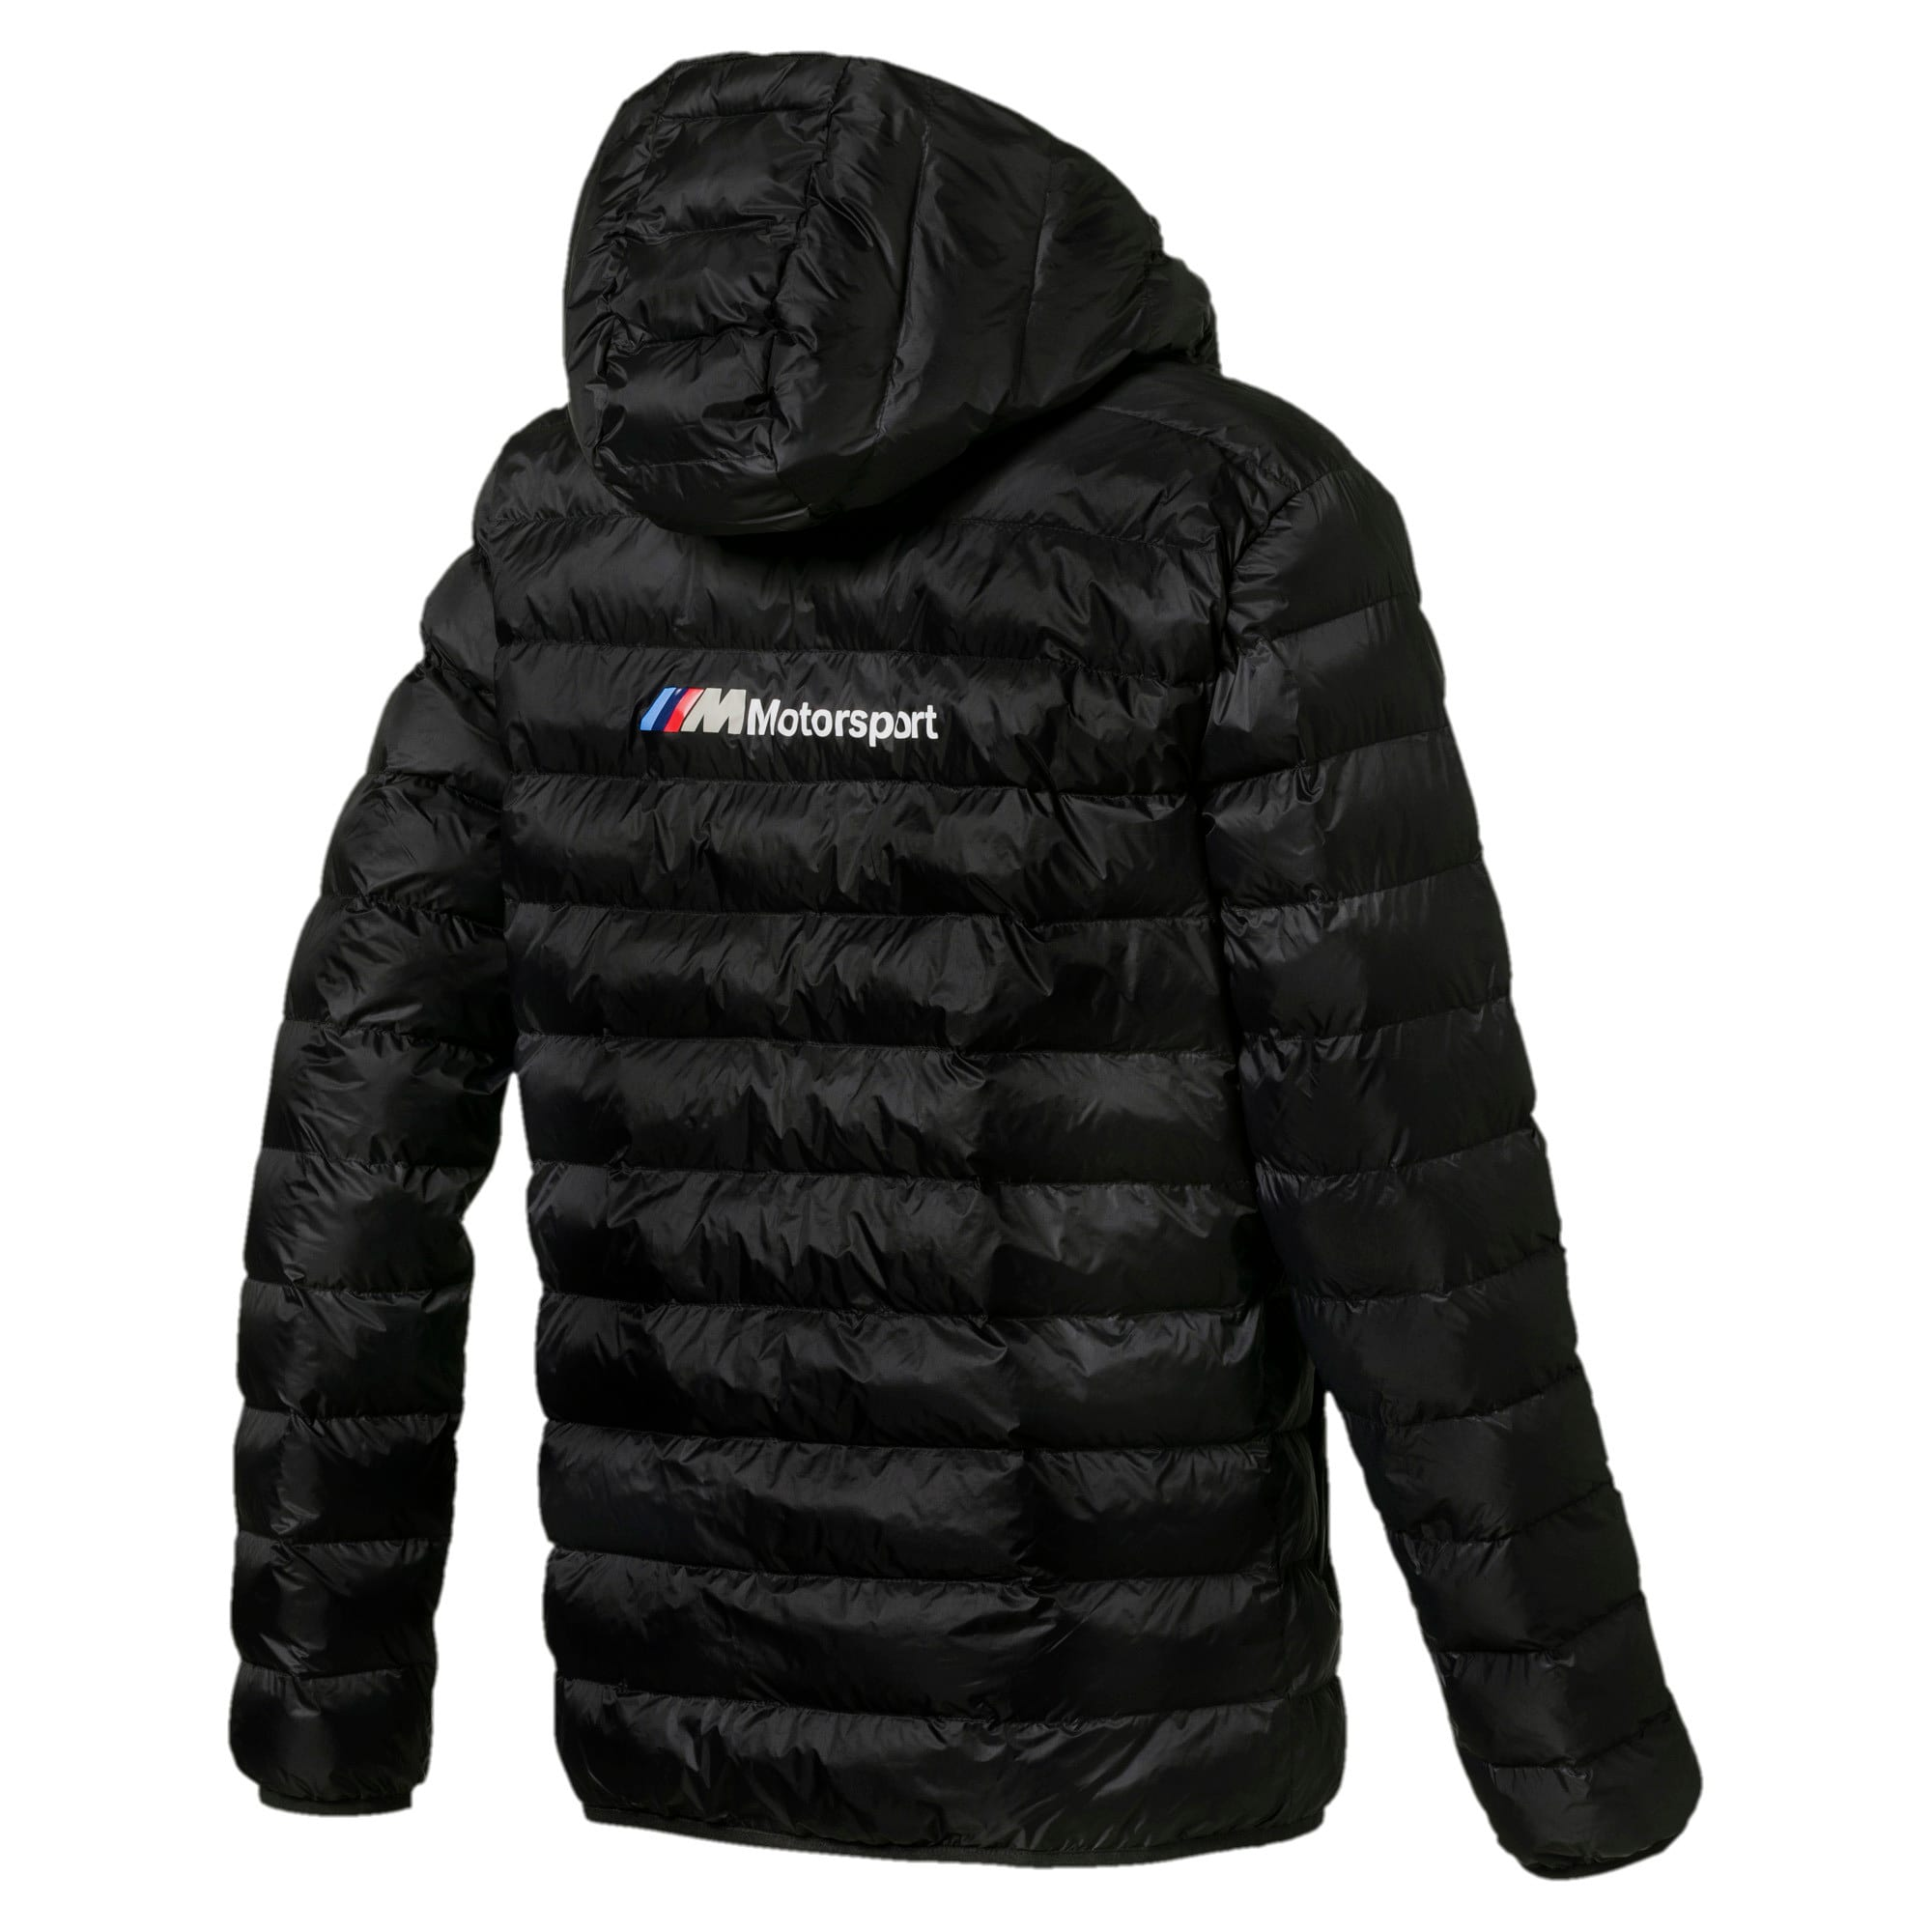 Thumbnail 6 of BMW Motorsport Eco PackLite Men's Jacket, Puma Black, medium